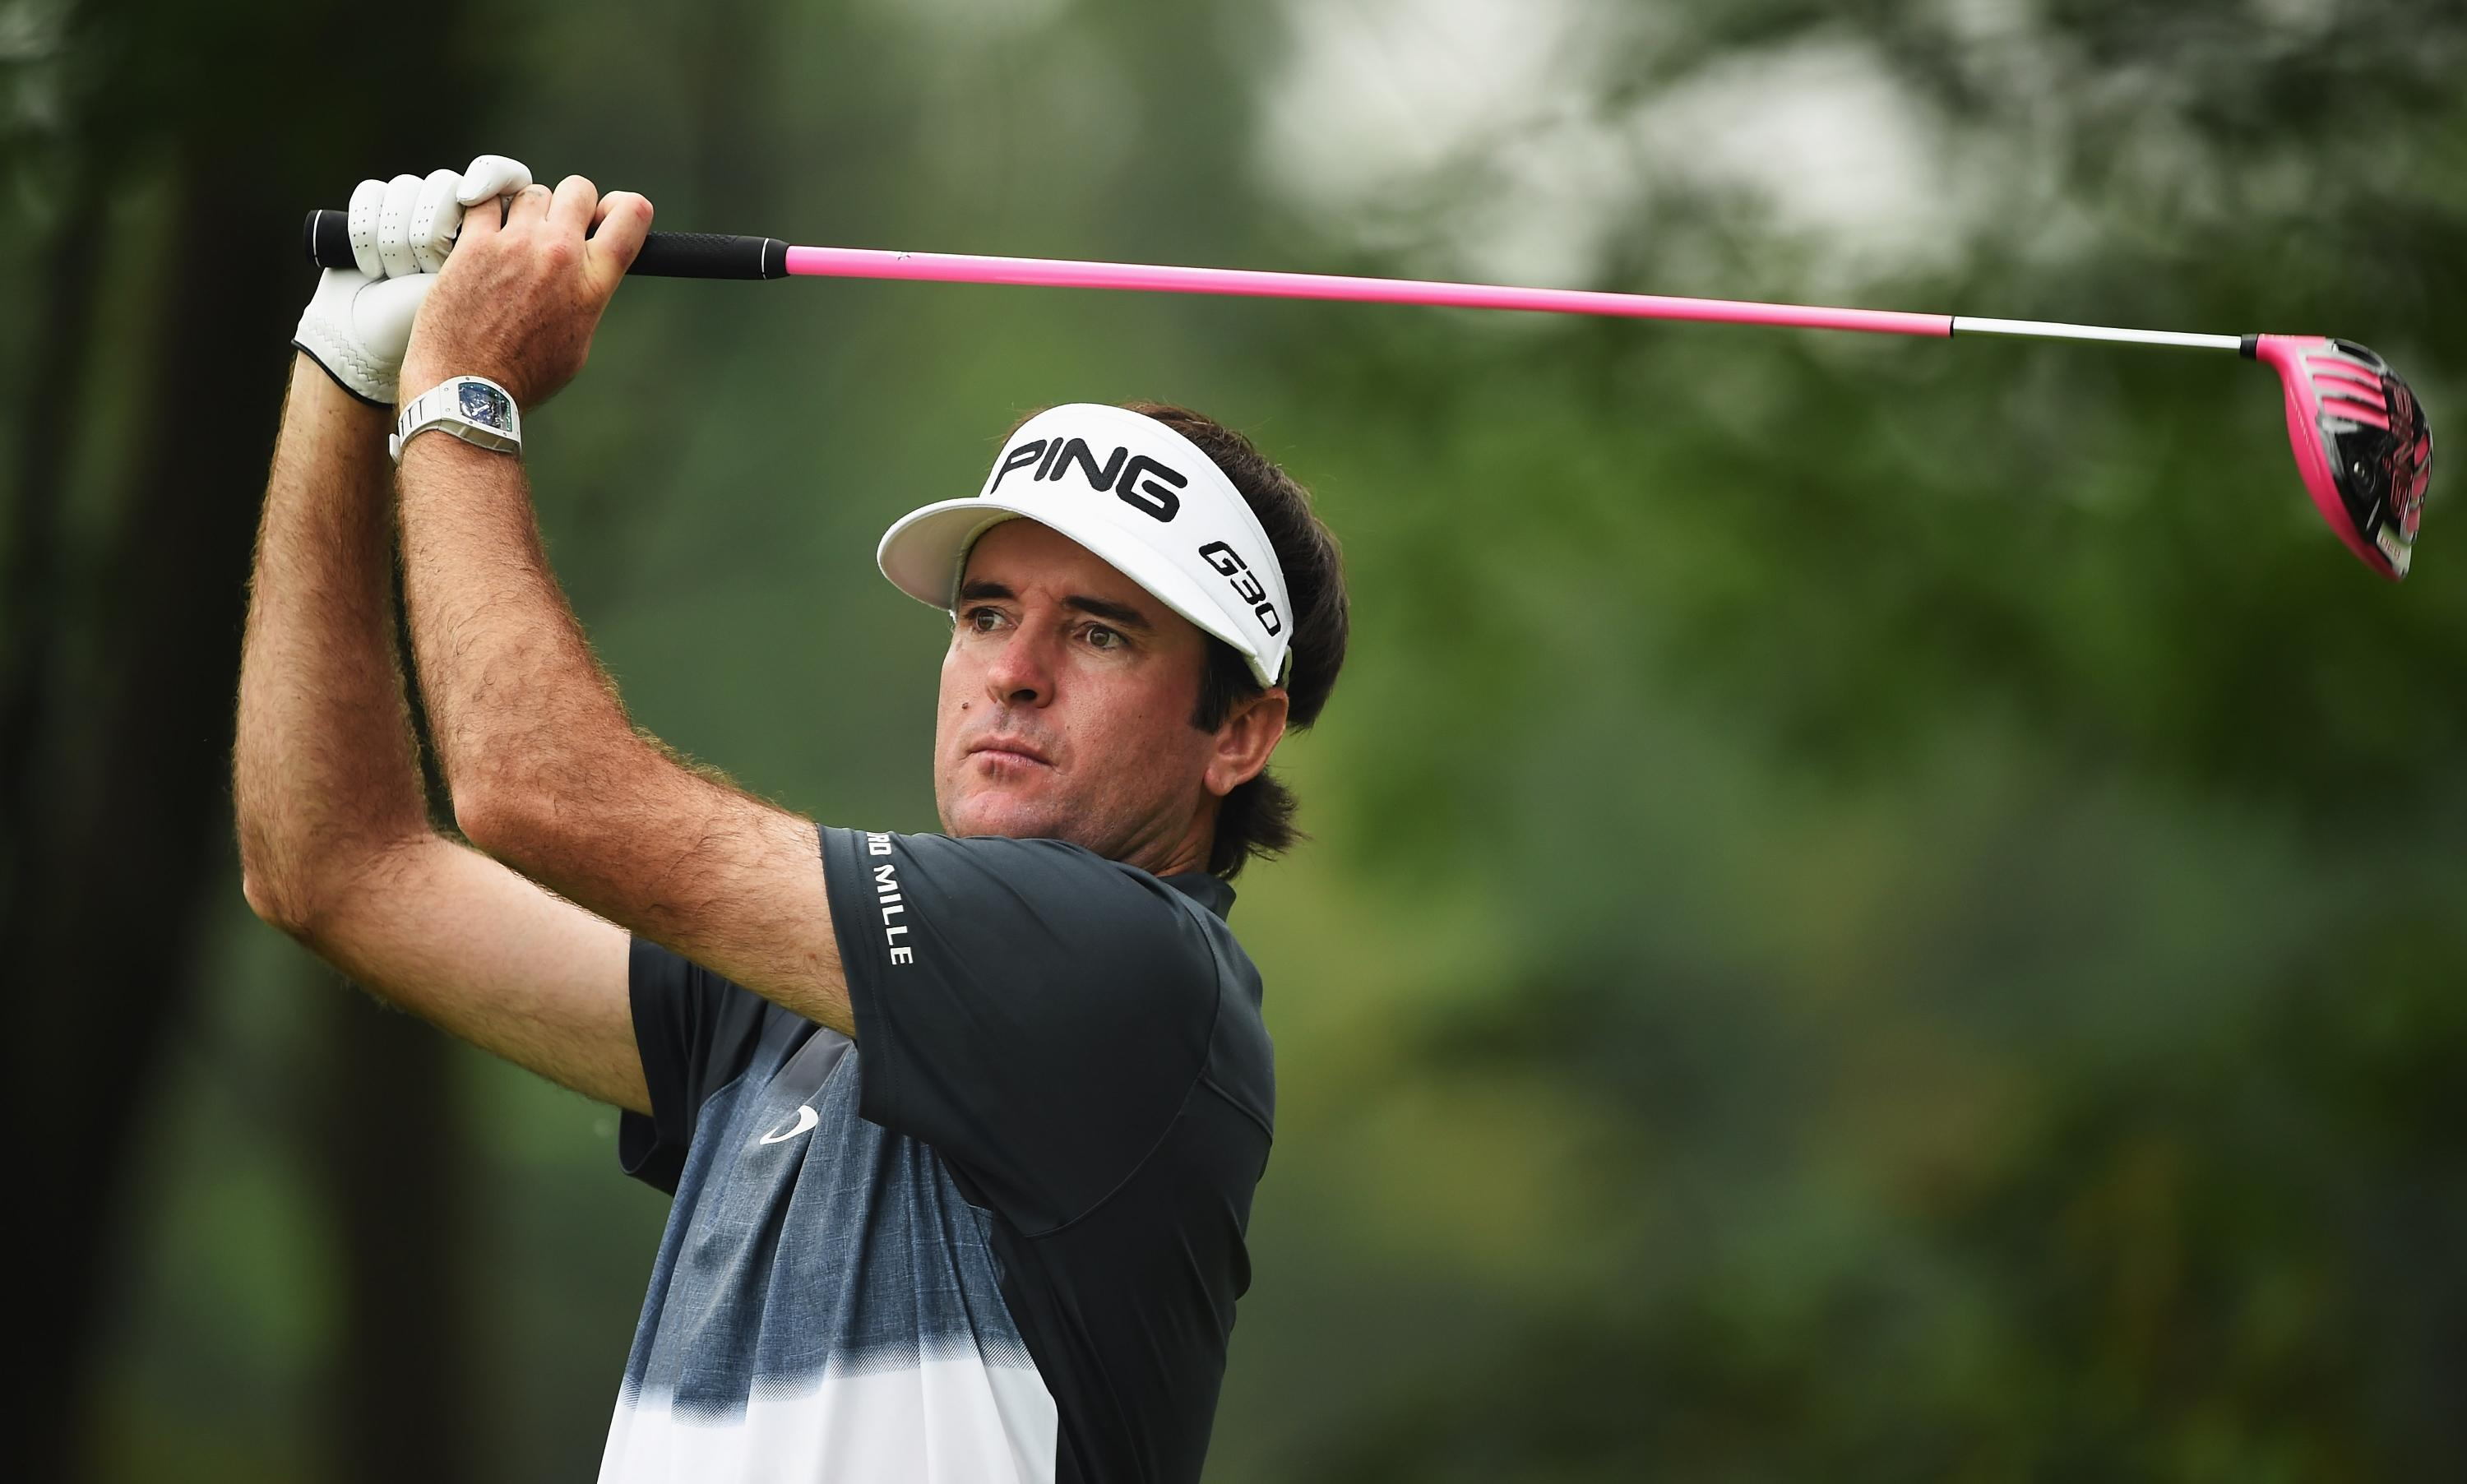 Bubba Watson takes BP with a golf club for a great trick shot